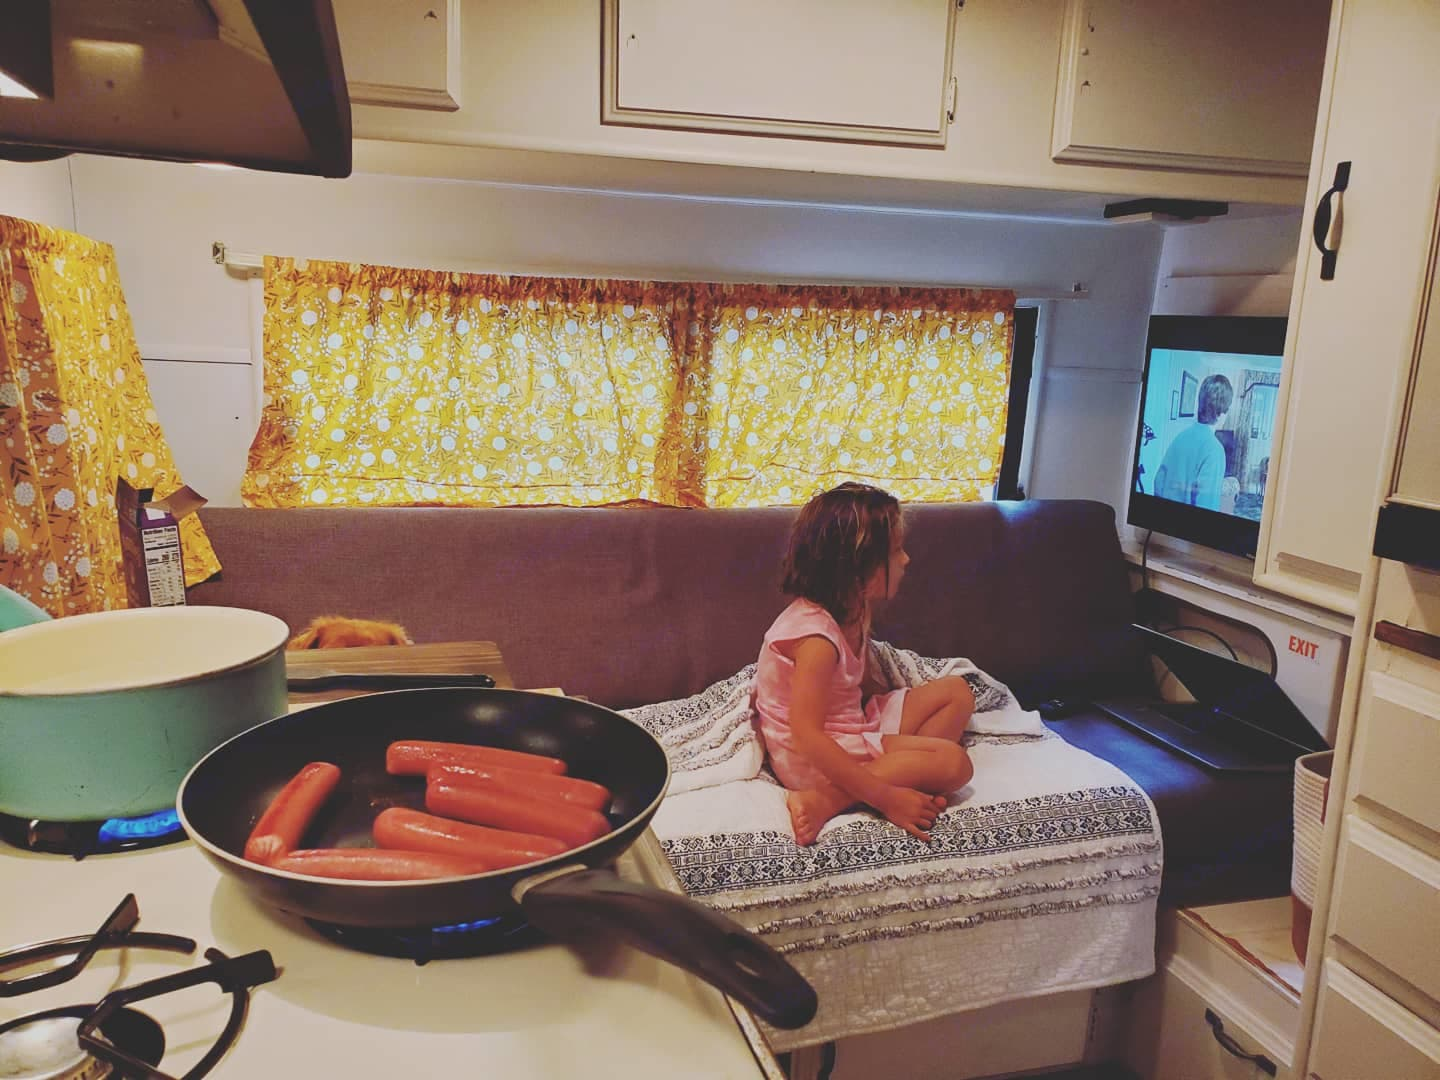 3 burner stove and fridge storage for delicious meals and even popcorn over the stove for movie night!. Serro Scotty Scotty Lite 1988